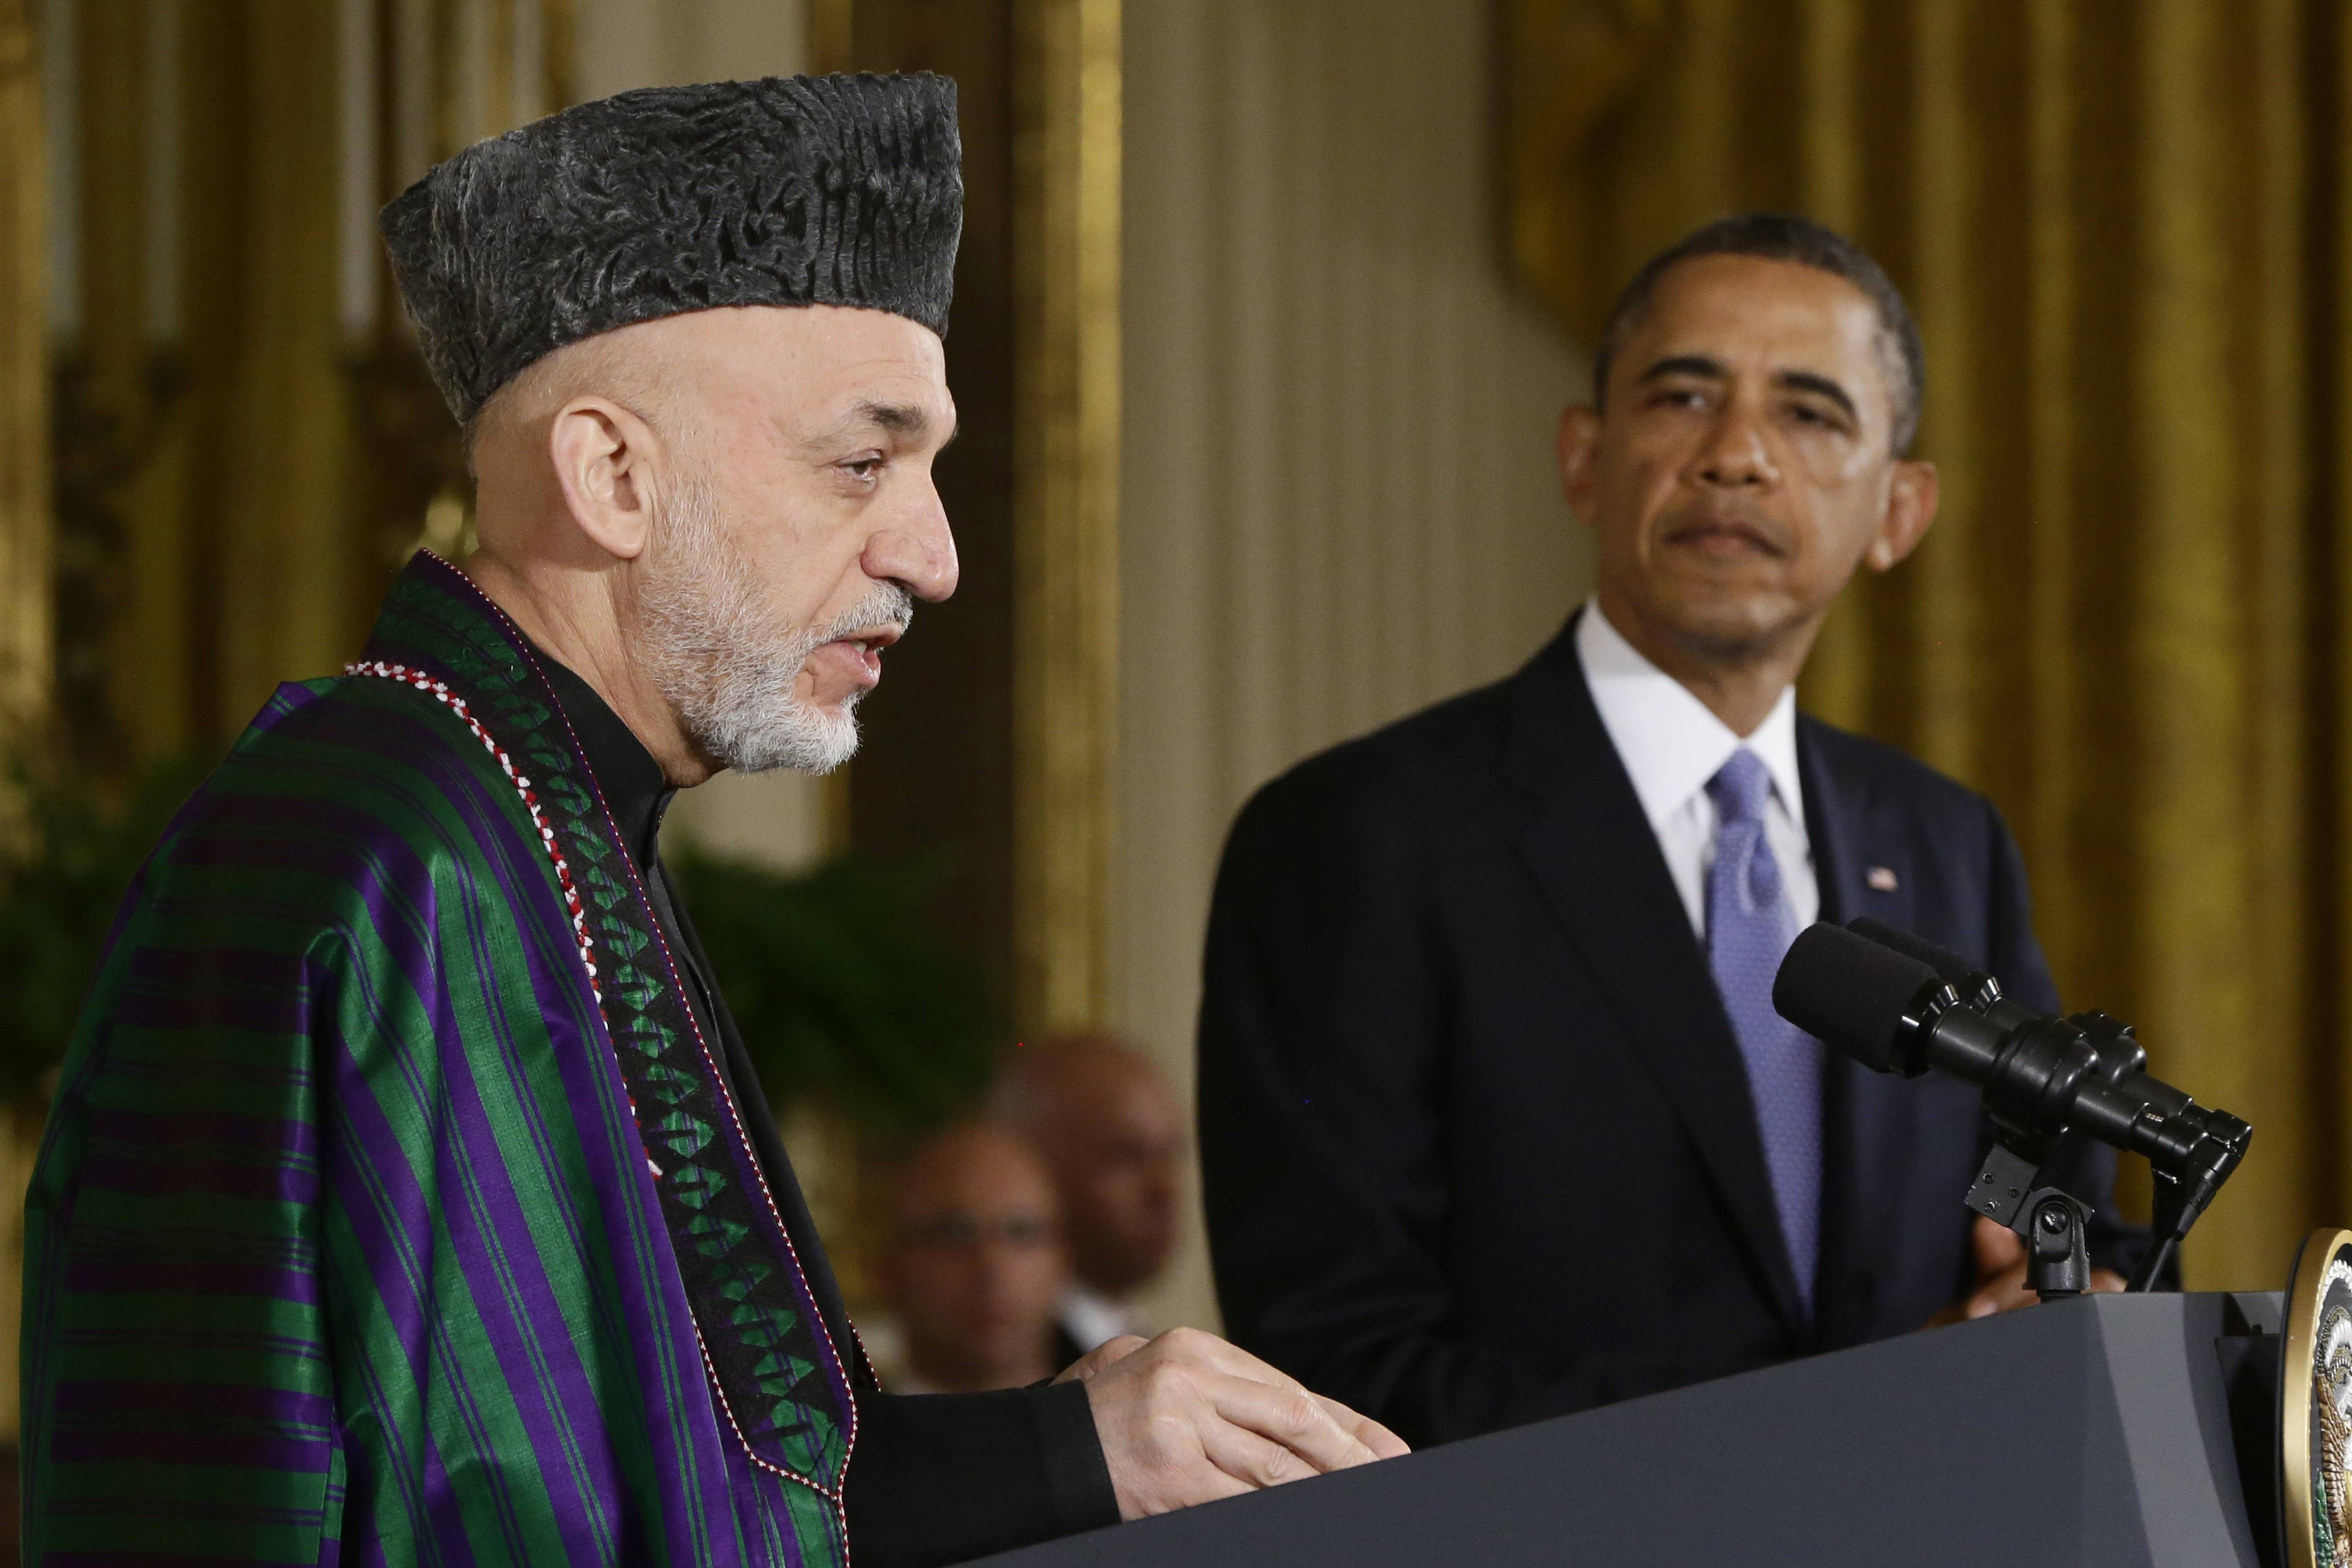 President Barack Obama and Afghan President Hamid Karzai conduct a joint news conference in the White House Jan. 11, 2013. Obama has ordered the Pentagon to plan for a full American withdrawal from Afghanistan by the end of this year should the Afghan government refuse to sign a security agreement with the U.S., the White House said Tuesday.